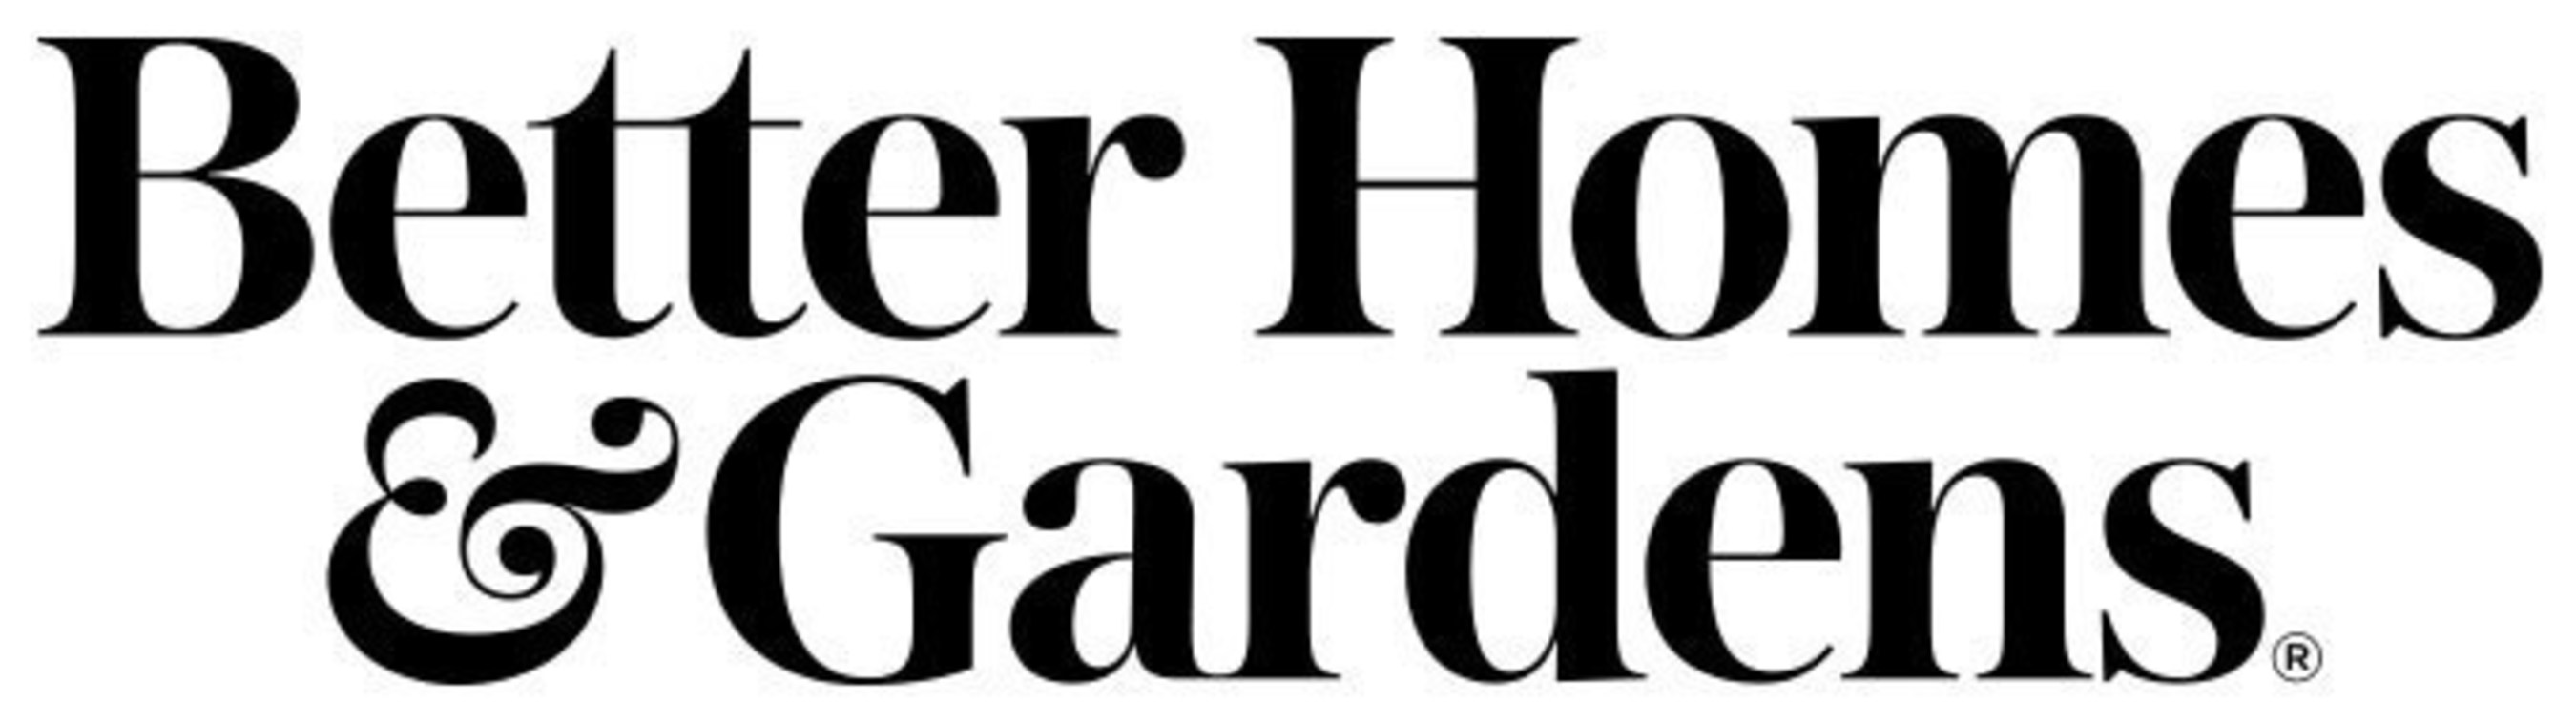 The New Better Homes U0026 Gardens Logo And Identity System Will Be Unveiled  With The January 2017 Issue Featuring Actress, Singer And Dancer Julianne  Hough On ...